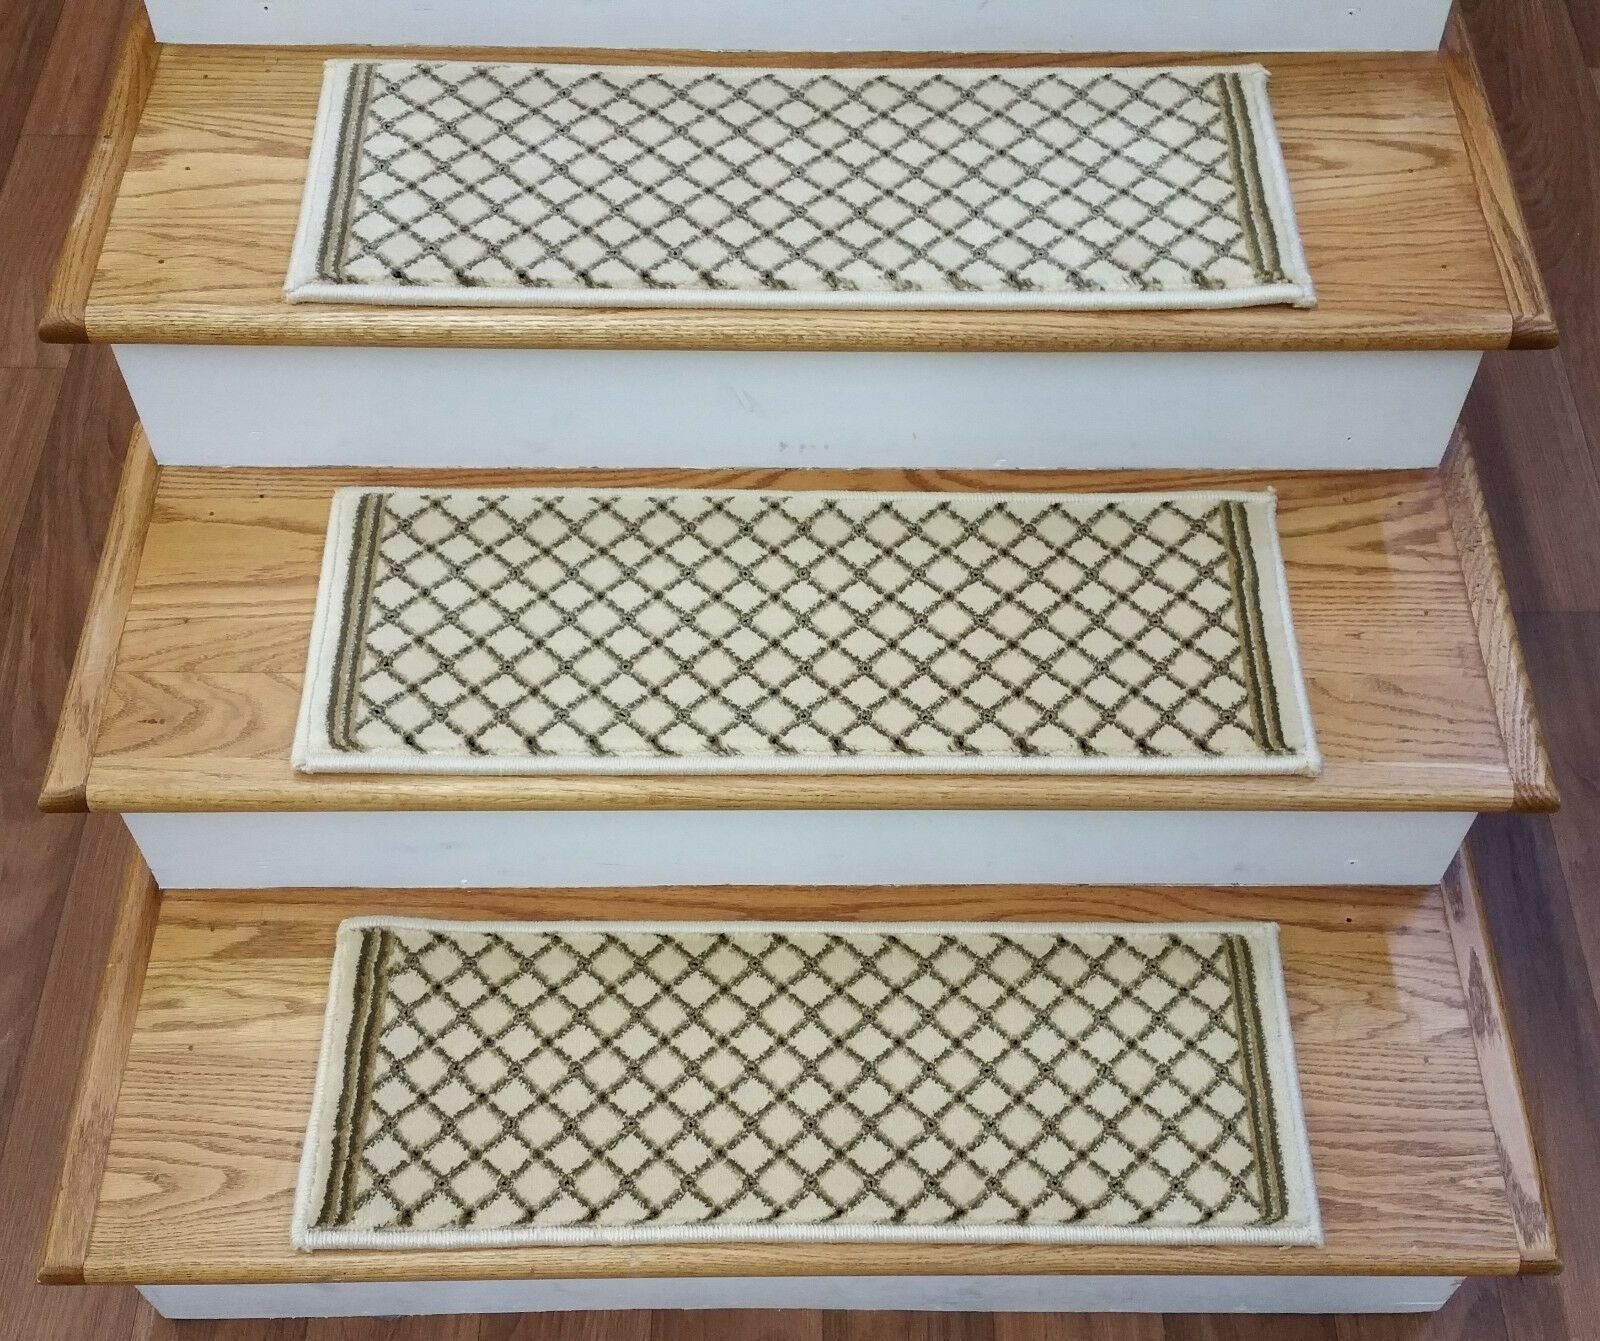 Natco Home Stair Treads Stair Treads 2028 Ivory 33in x 9in Set of 13 With Non Slip Pads